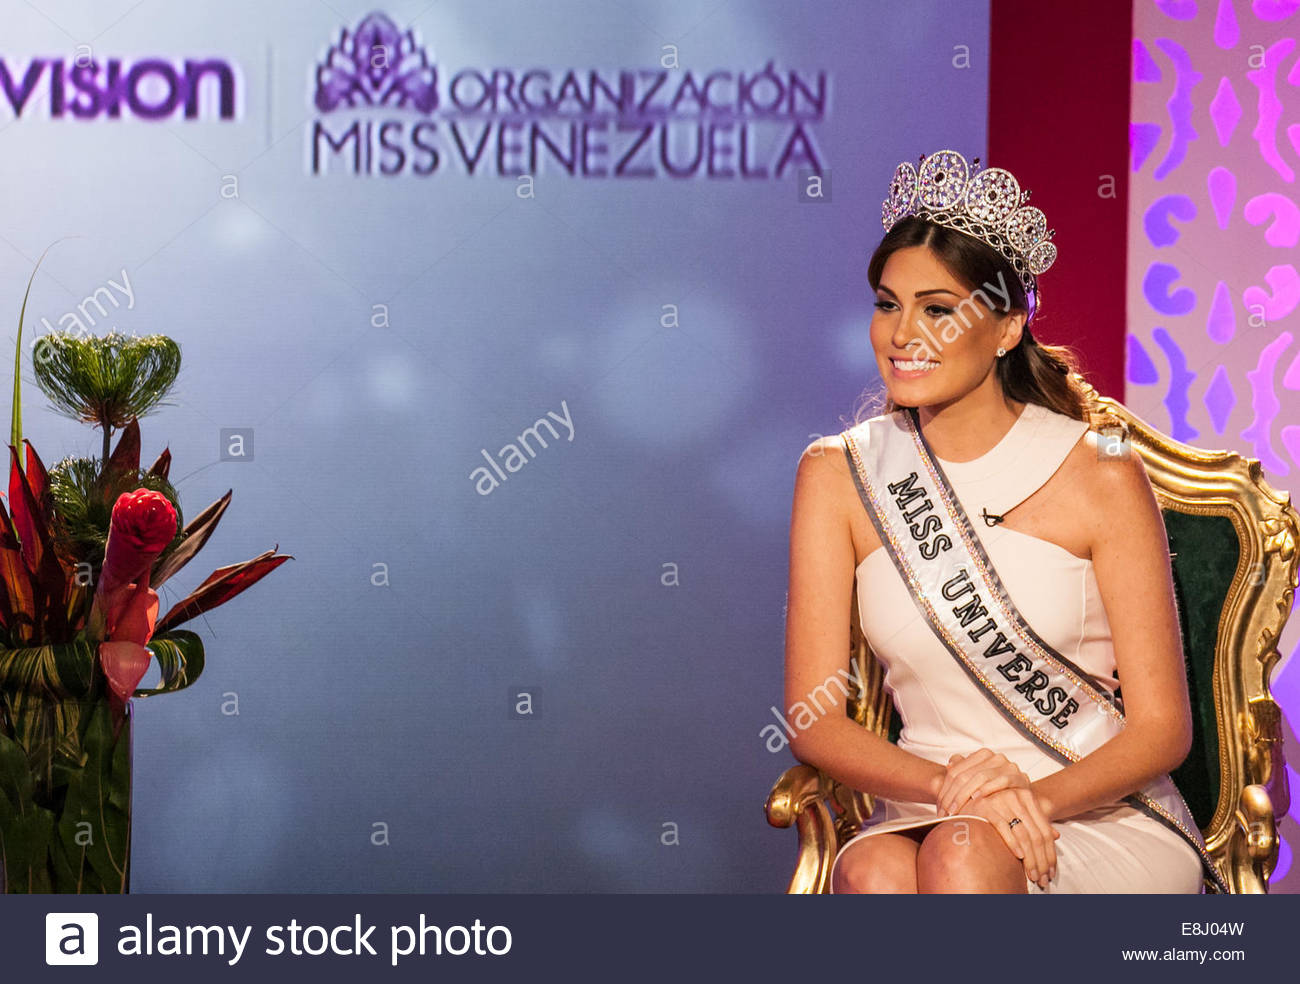 gabriela isler, miss universe 2013. - Página 22 Caracas-venezuela-8th-oct-2014-the-winner-of-the-contest-miss-universe-e8j04w_hrp6